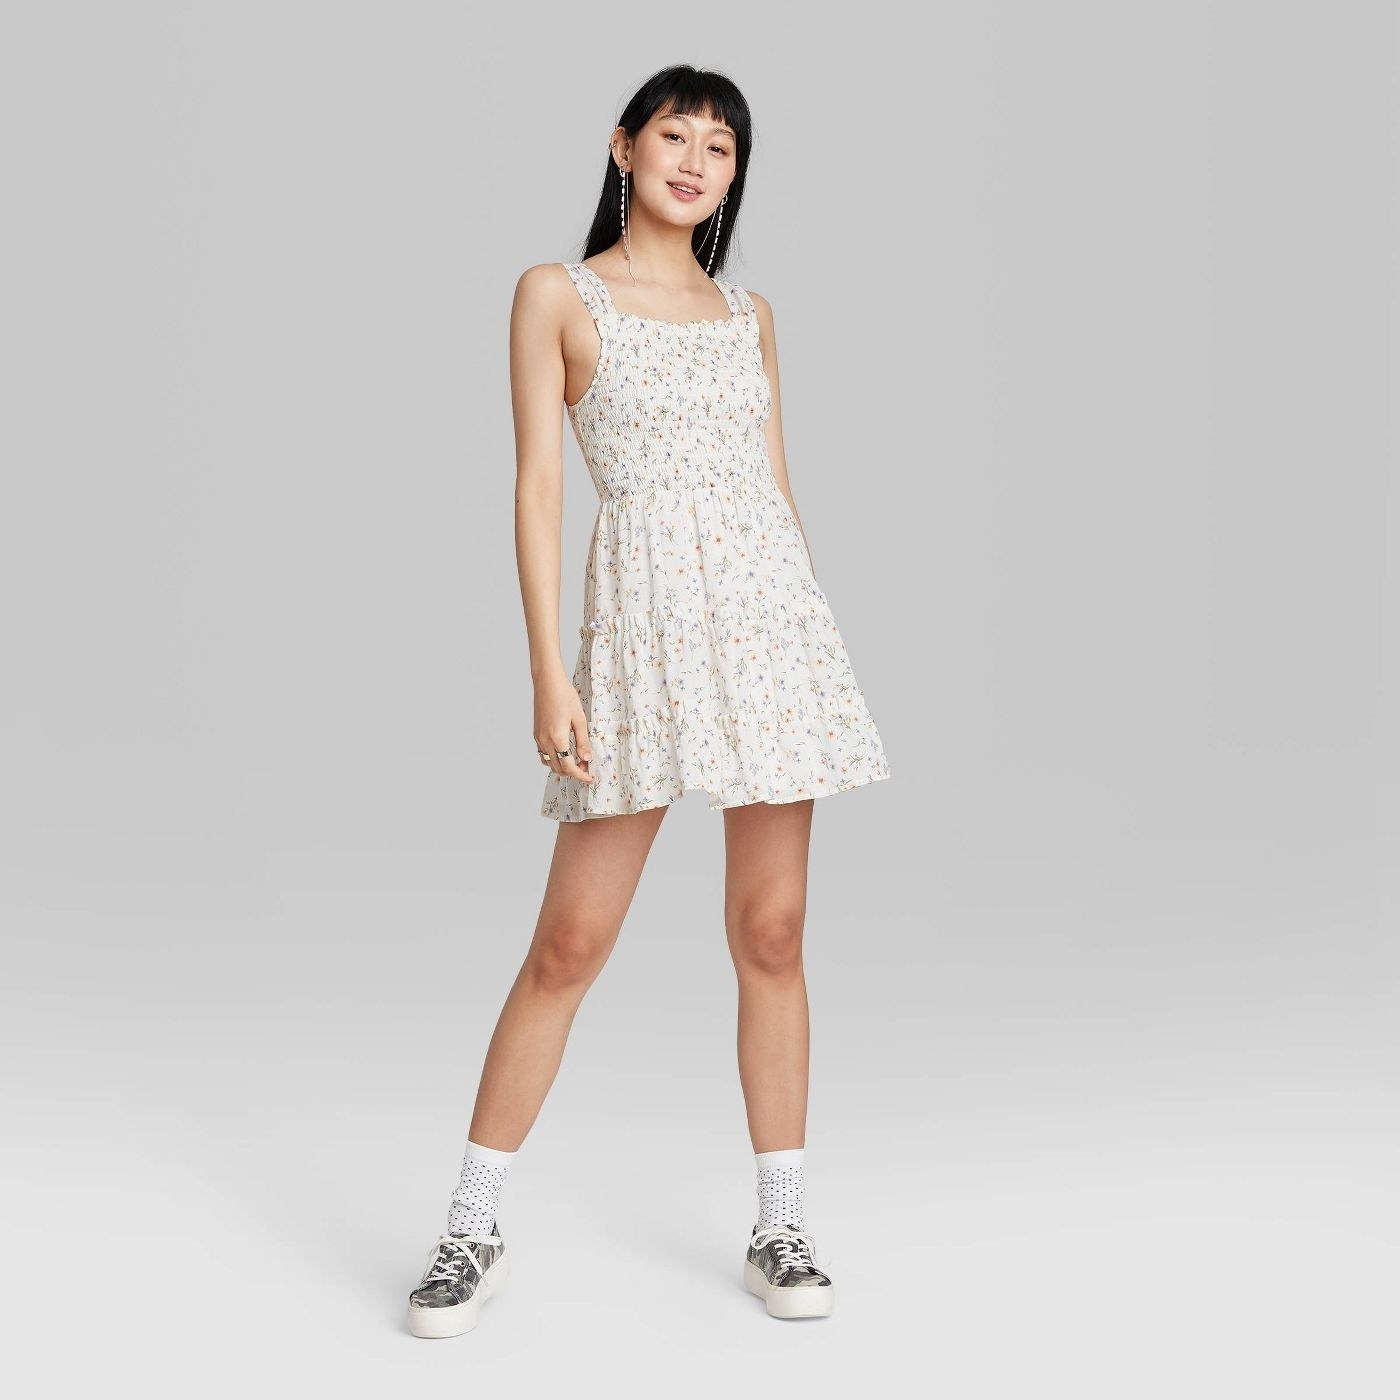 Model wearing white mini dress with floral patter, has a tiered hem skirt